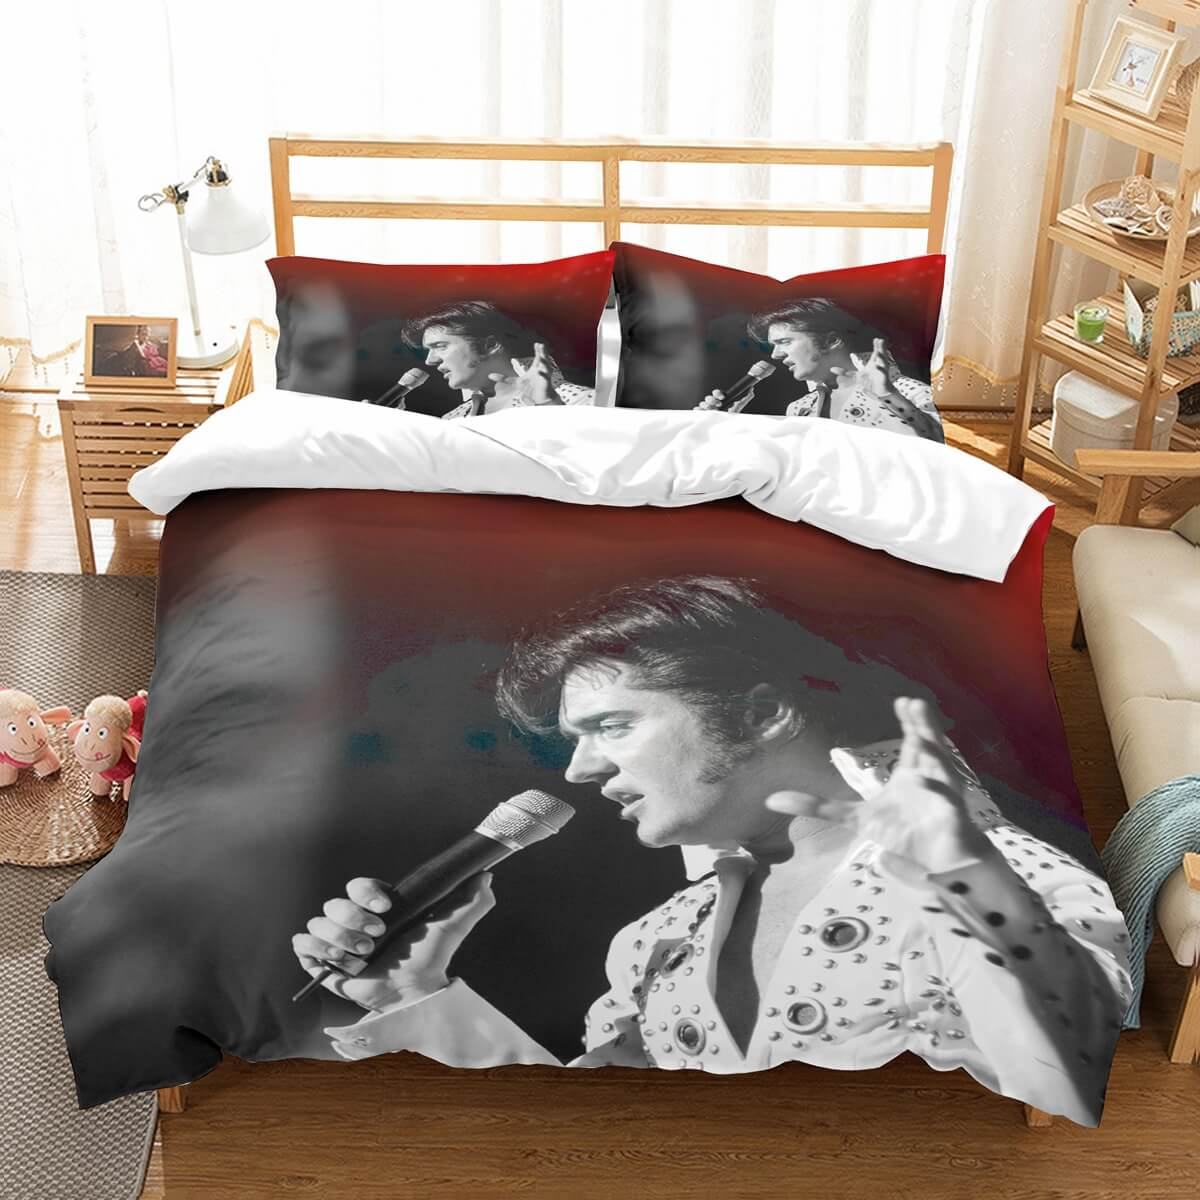 Elvis Presley Bedding Sets.3d Customize Elvis Presley Bedding Set Duvet Cover Set Bedroom Set Bedlinen 3d Customize Elvis Presley Bedding Set Duvet Cover Set Bedroom Set